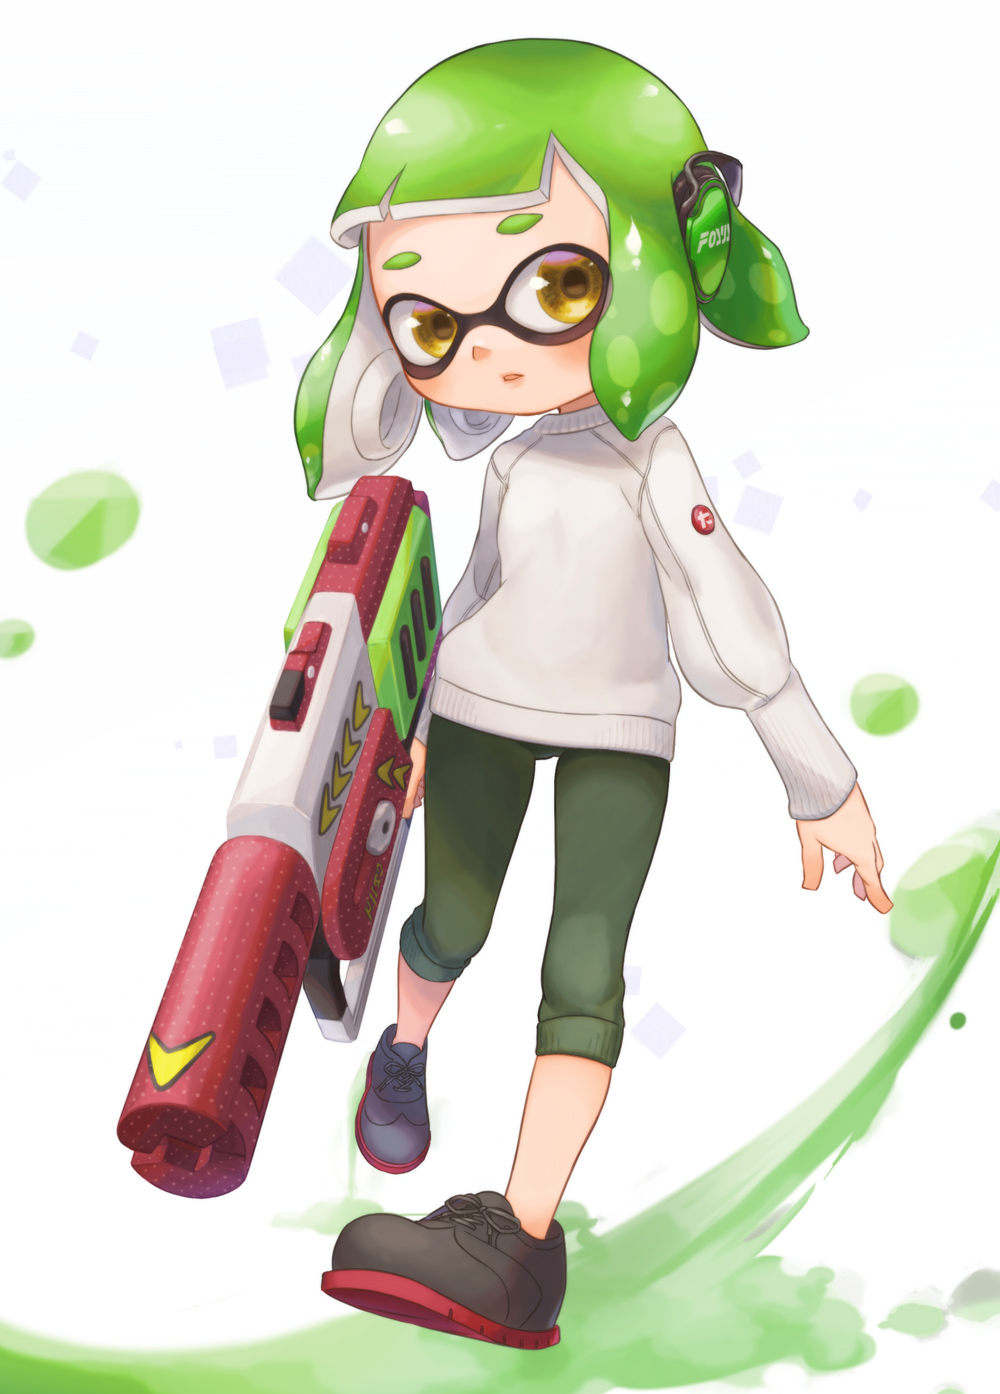 1girl capri_pants domino_mask full_body green_hair green_pants grey_footwear headphones highres holding inkling leg_up legs_apart long_sleeves looking_away looking_to_the_side mask open_mouth pants rapid_blaster_pro_(splatoon) shoelaces shoes short_hair solo splatoon splatoon_(series) splatoon_2 suction_cups suzuhiro sweater tentacle_hair white_sweater yellow_eyes